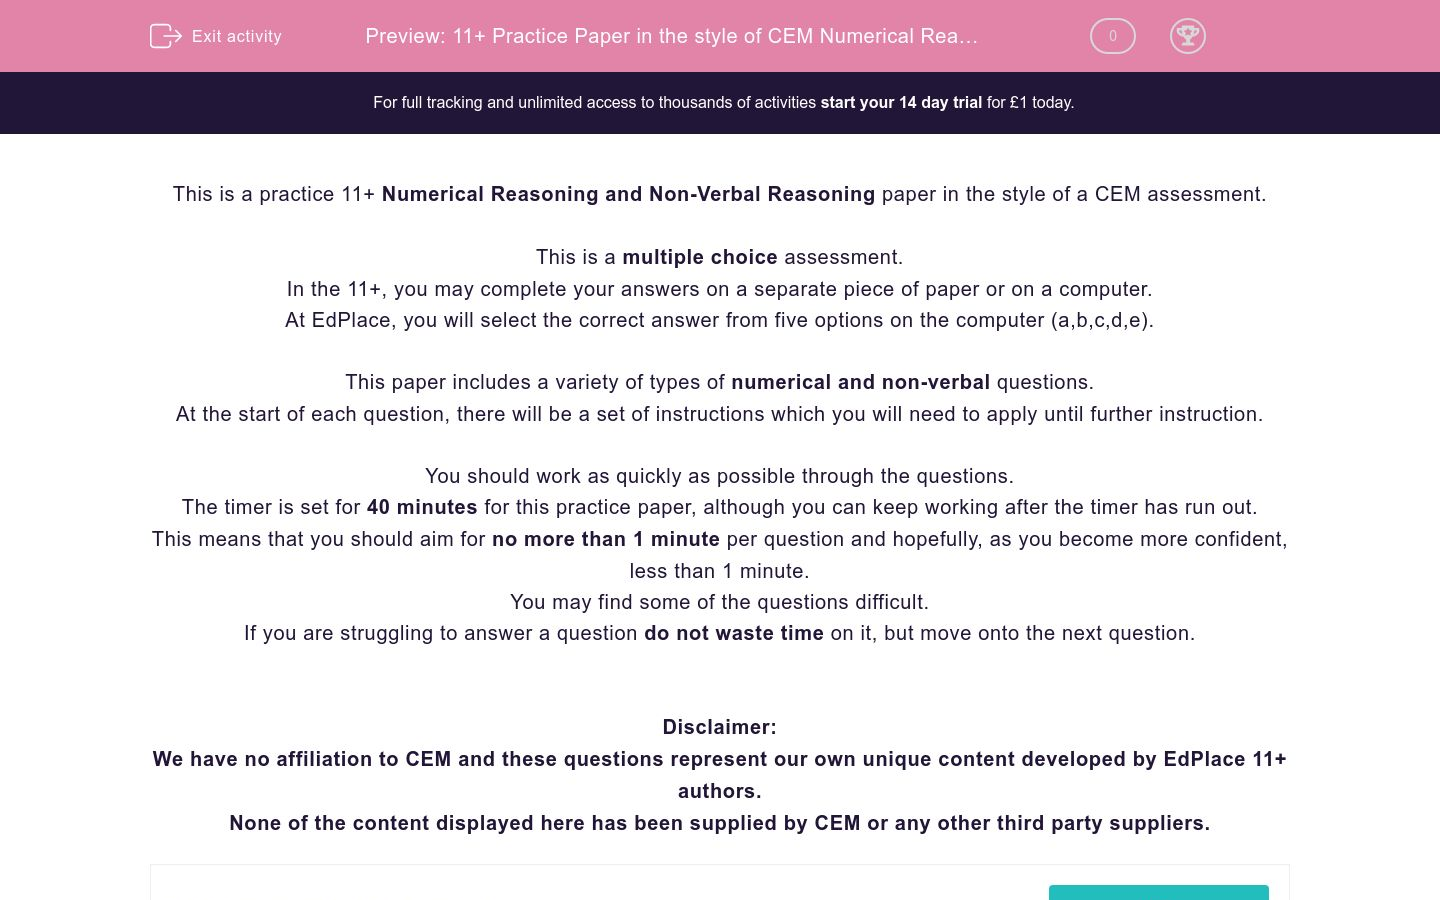 '11+ Practice Paper in the style of CEM Numerical Reasoning and Non Verbal Reasoning' worksheet